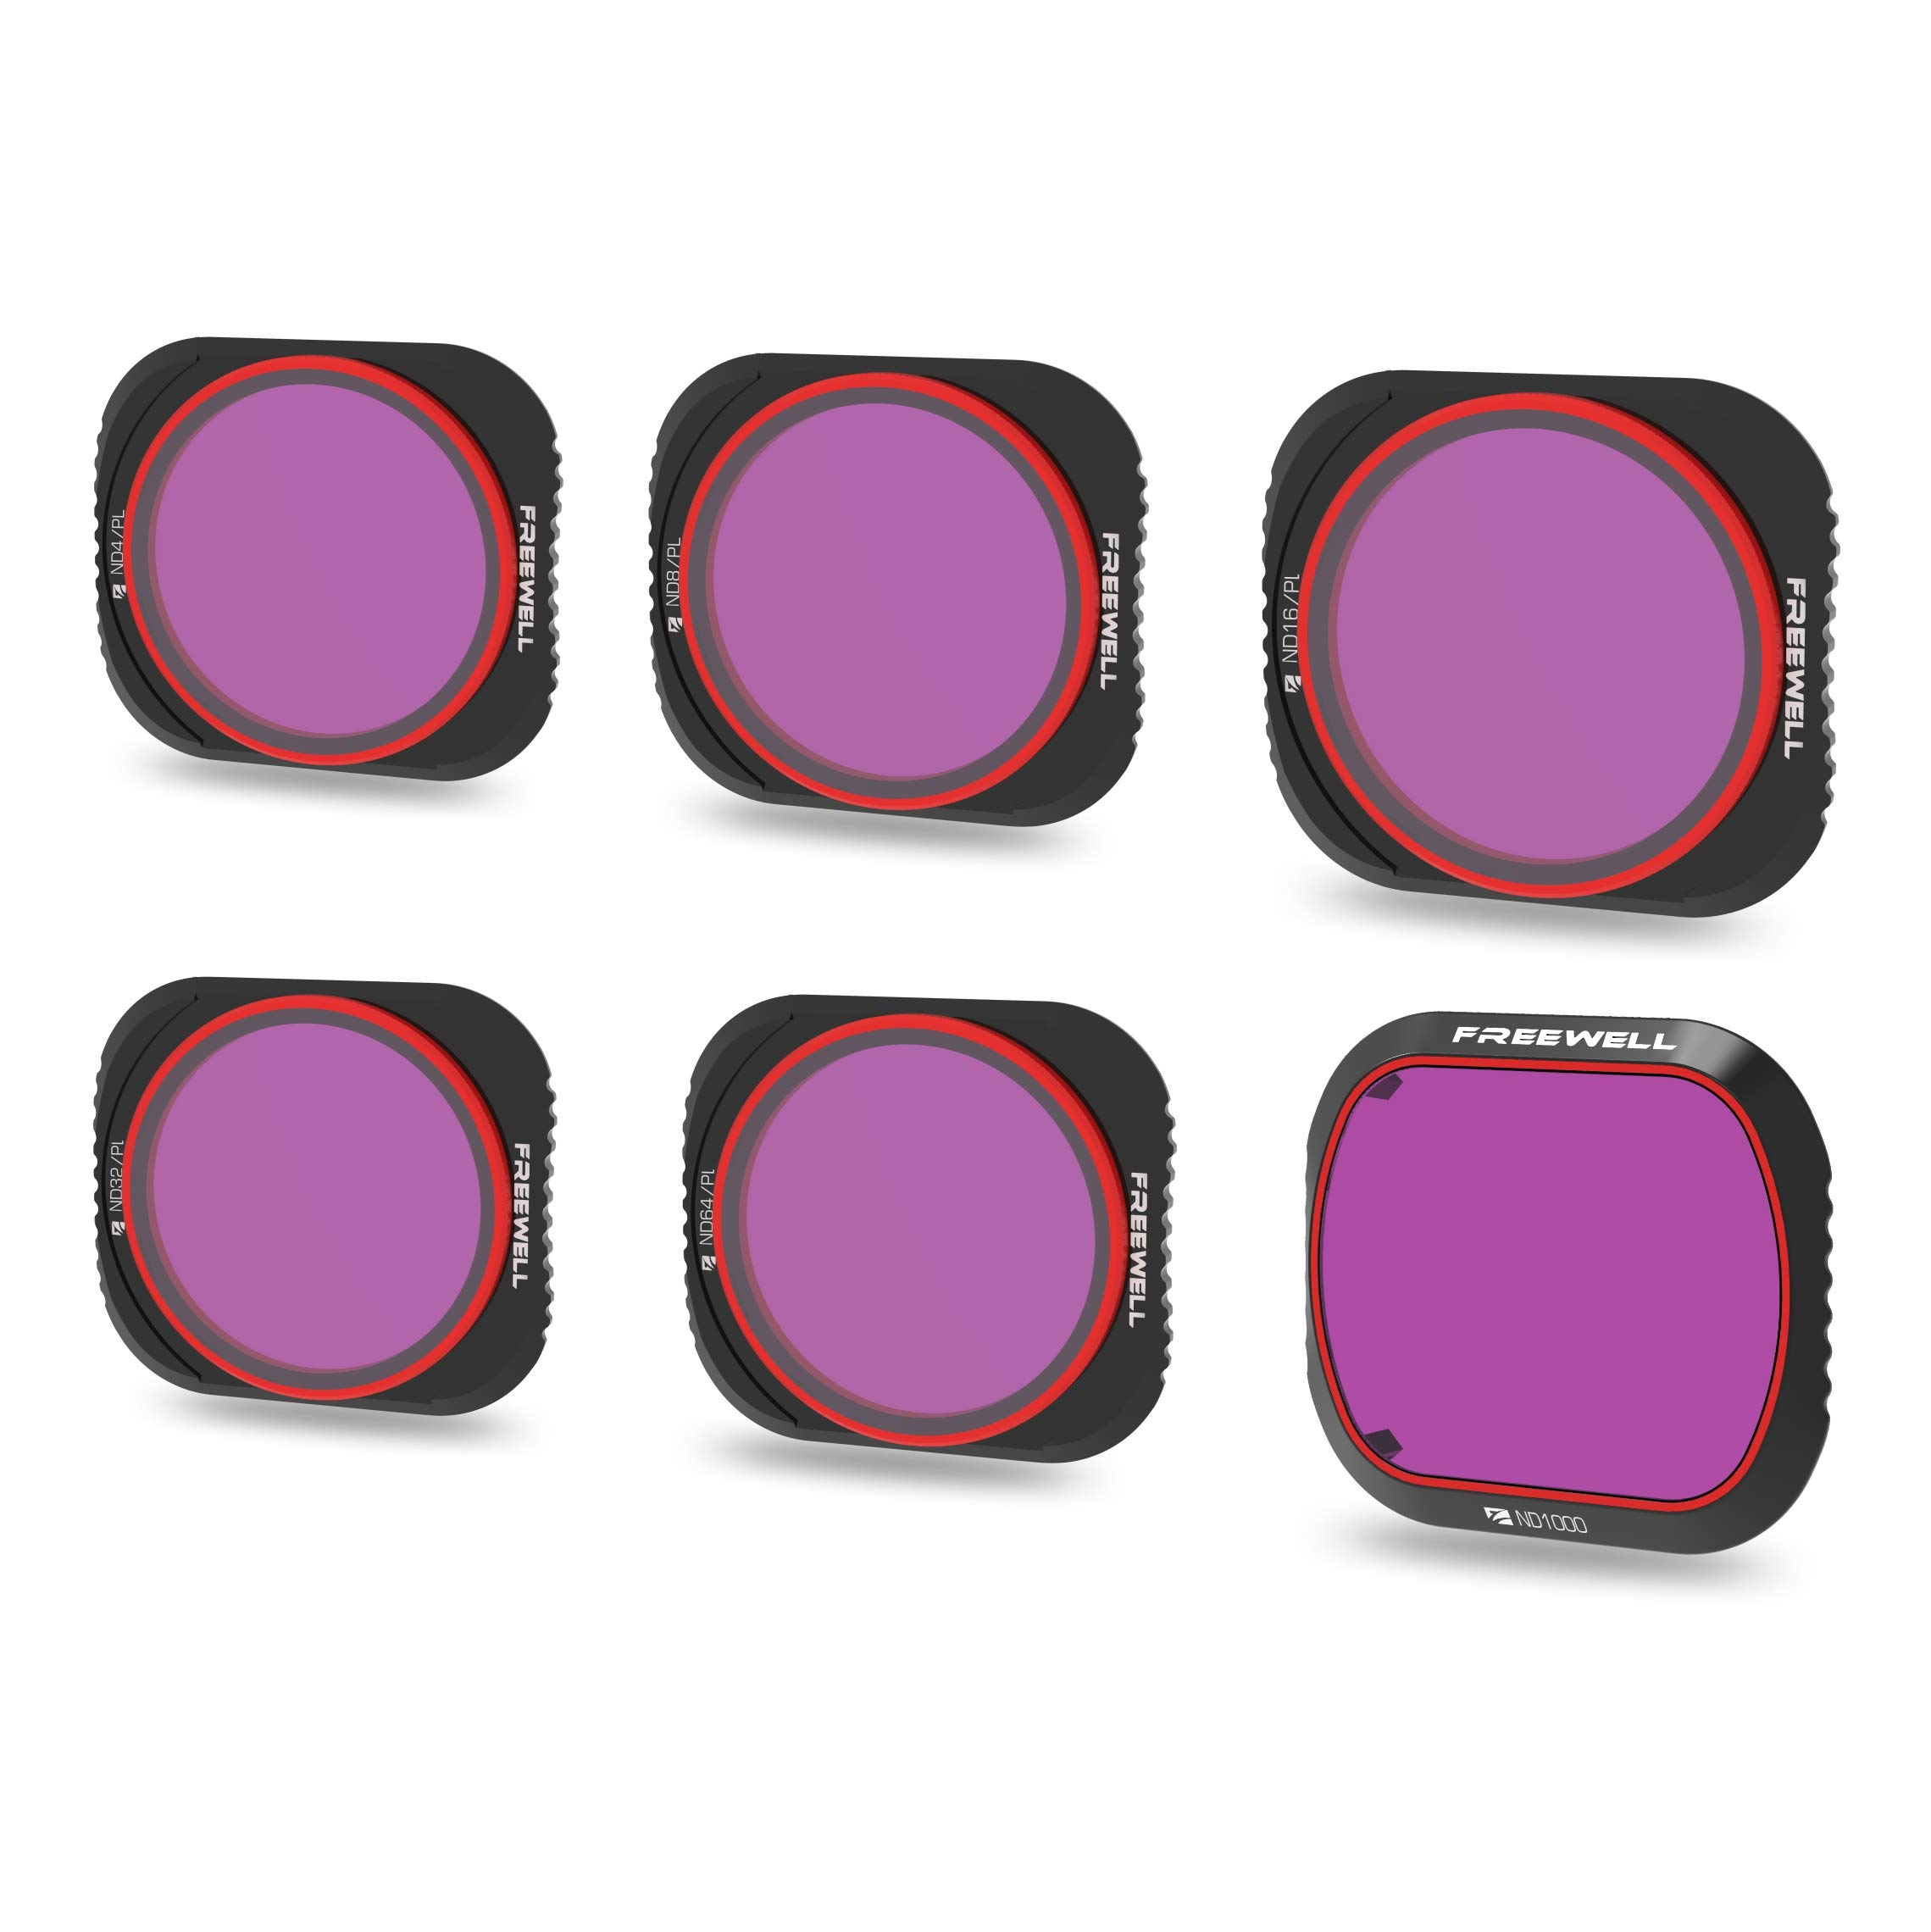 Freewell Limited Edition - 4K Series - 6Pack ND4/PL, ND8/PL, ND16/PL, ND32/PL, ND64/PL,ND1000 Camera Lens Filters Compatible with DJI Mavic 2 Pro Drone